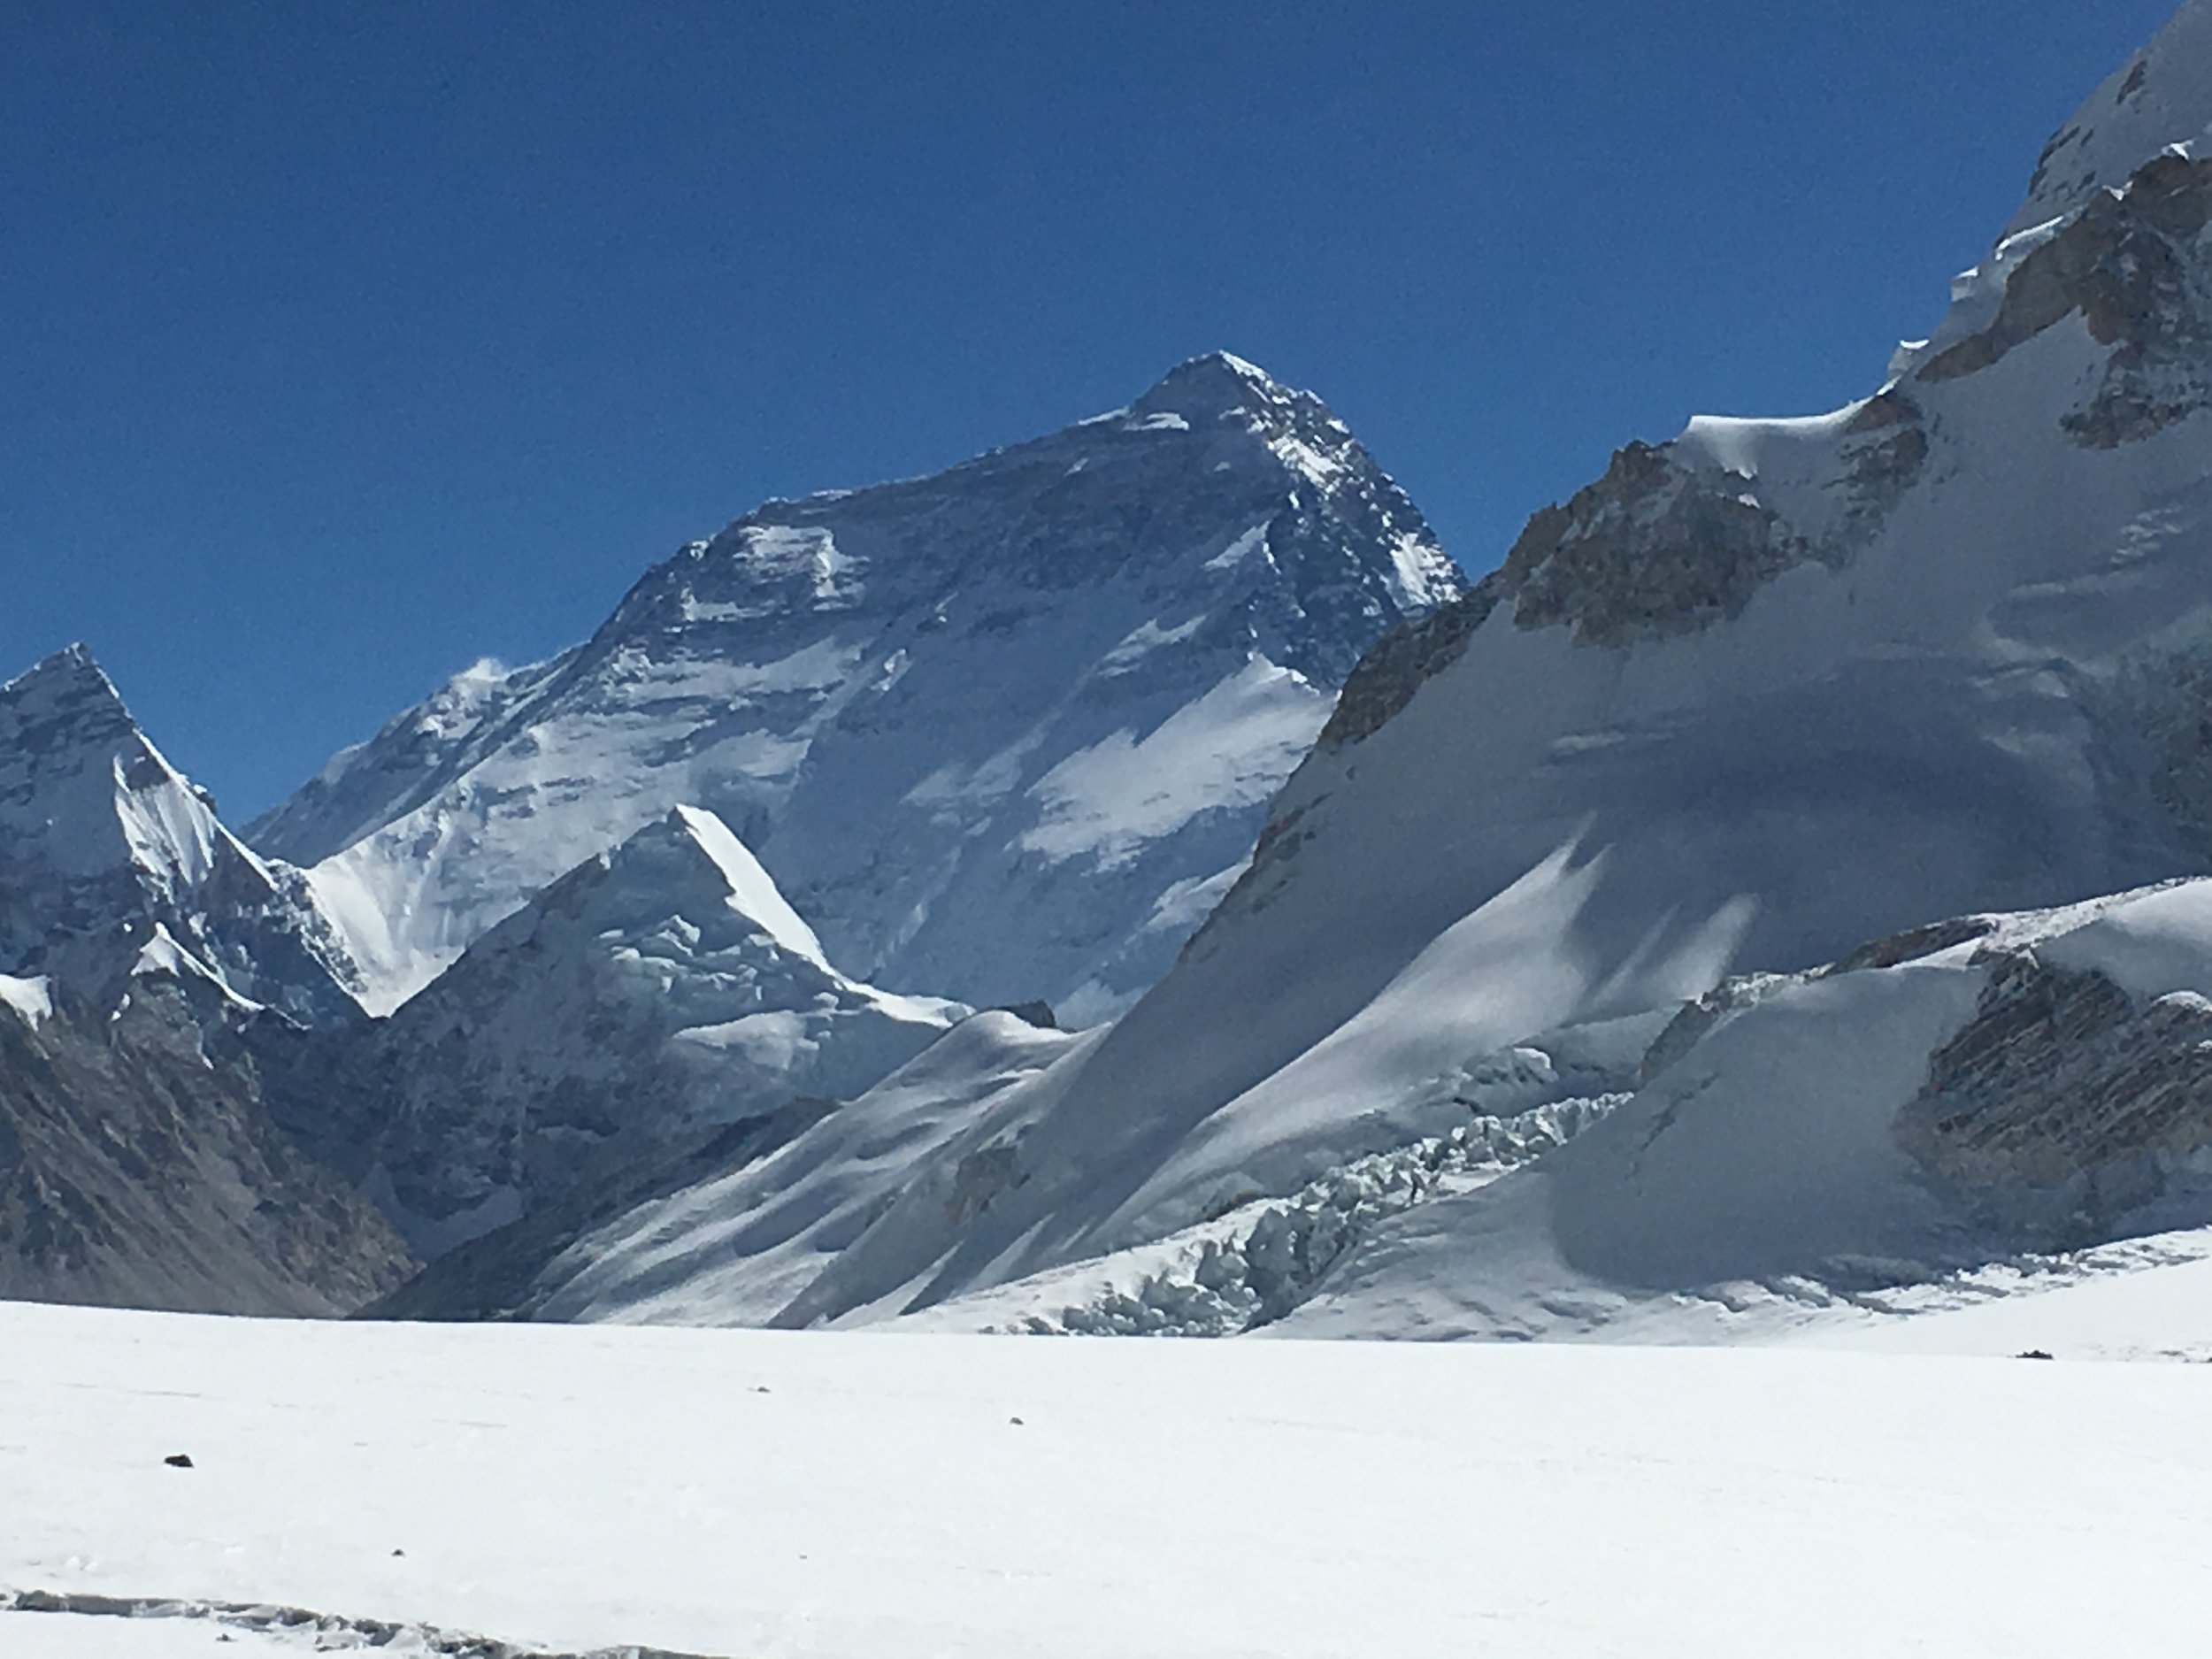 Everest's north face from Tharke Khang advanced base camp